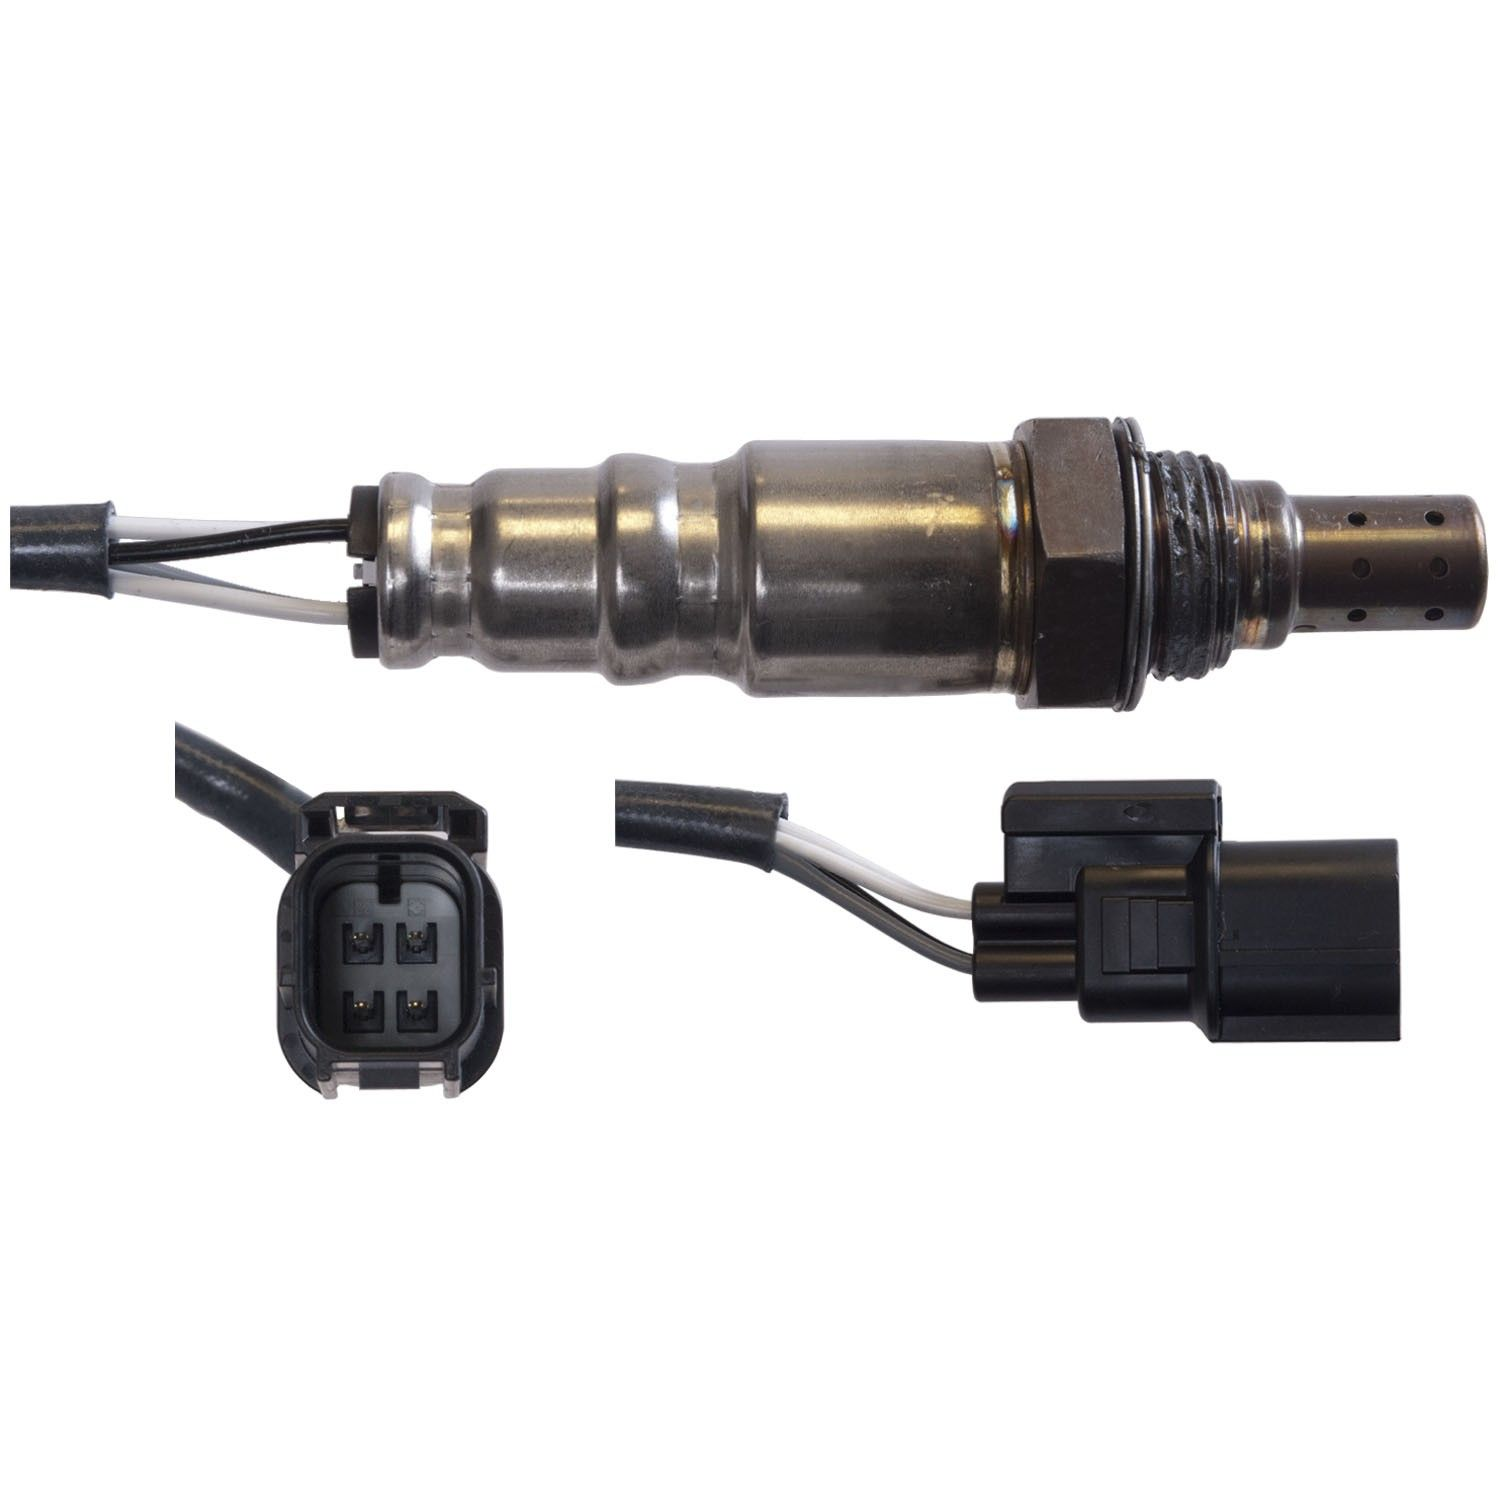 Honda Odyssey Oxygen Sensor Replacement Bosch Delphi Denso Ngk 2003 02 Location 2014 Downstream 6 Cyl 35l 234 4976 Oe Quality 2 Required